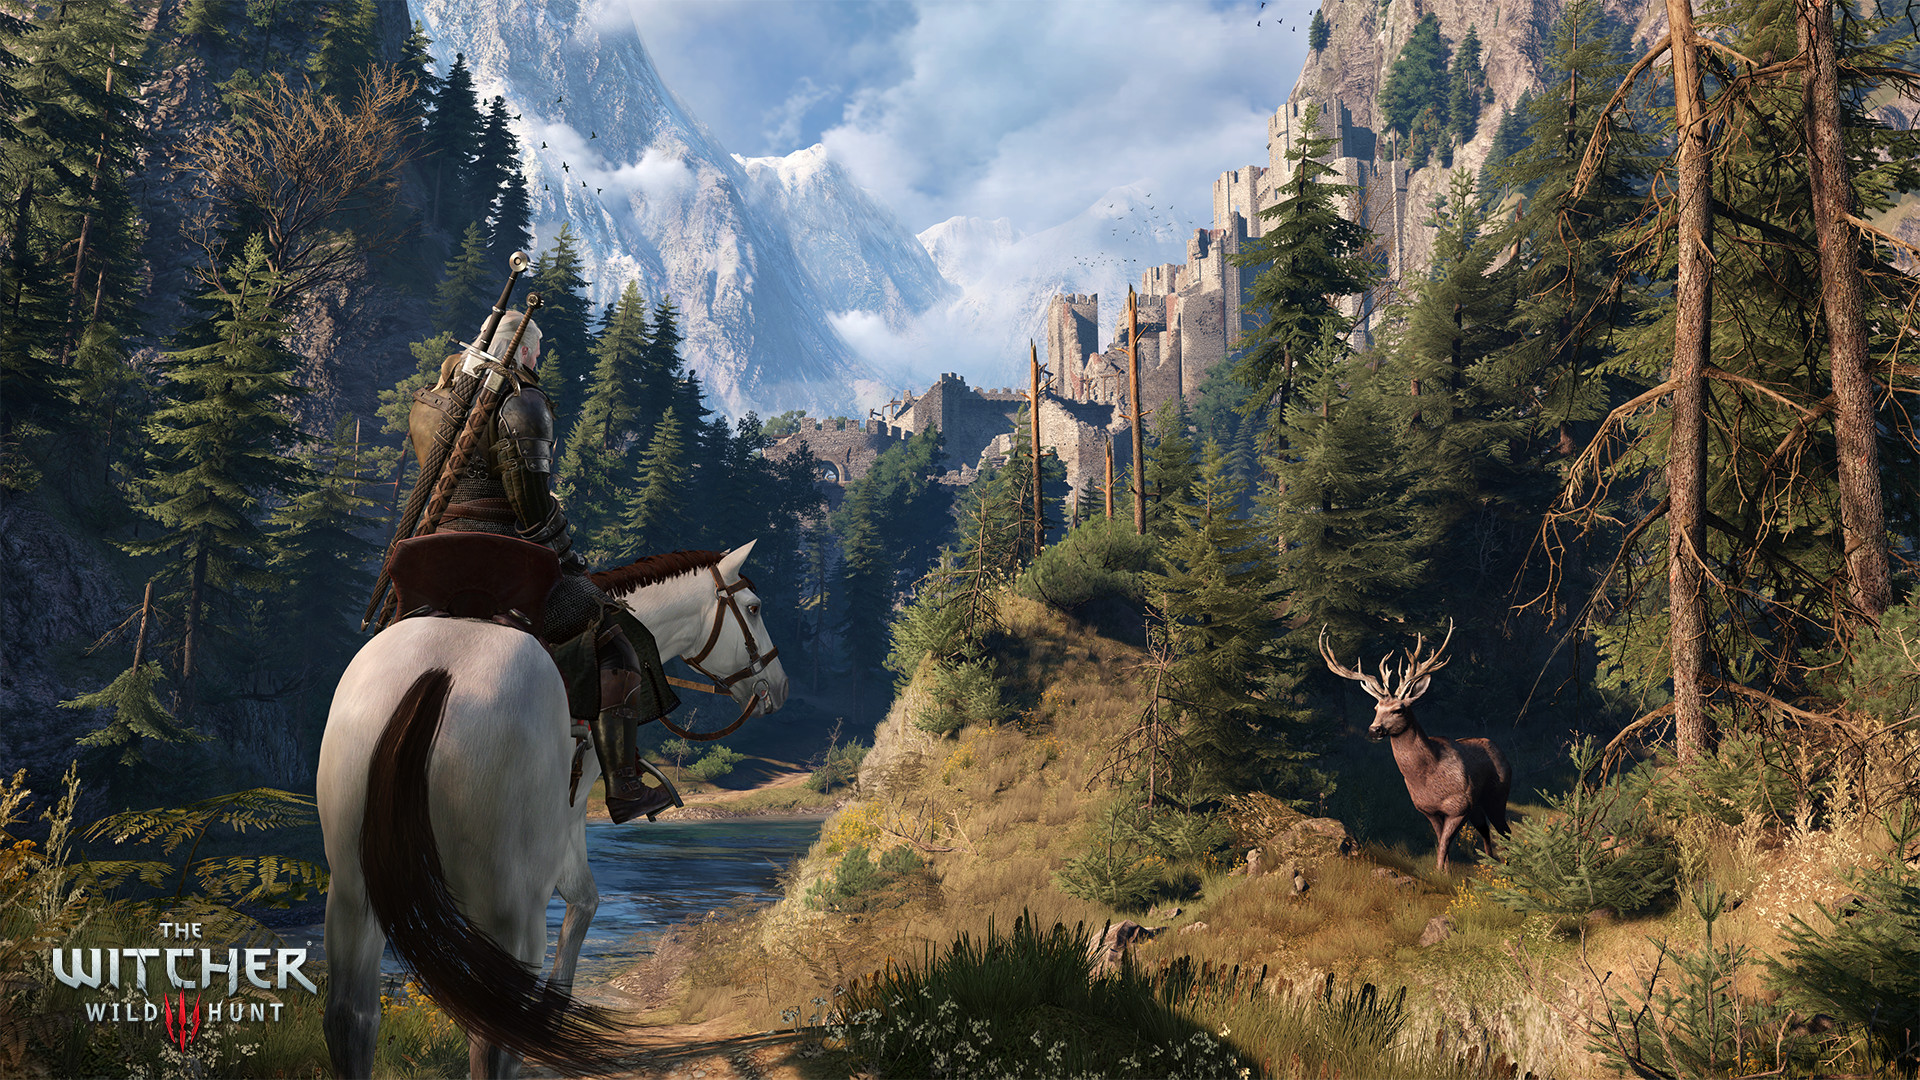 download the witcher 3 wild hunt game of the year edition multiplayer edition giveaway mp addon add-on free cracked online